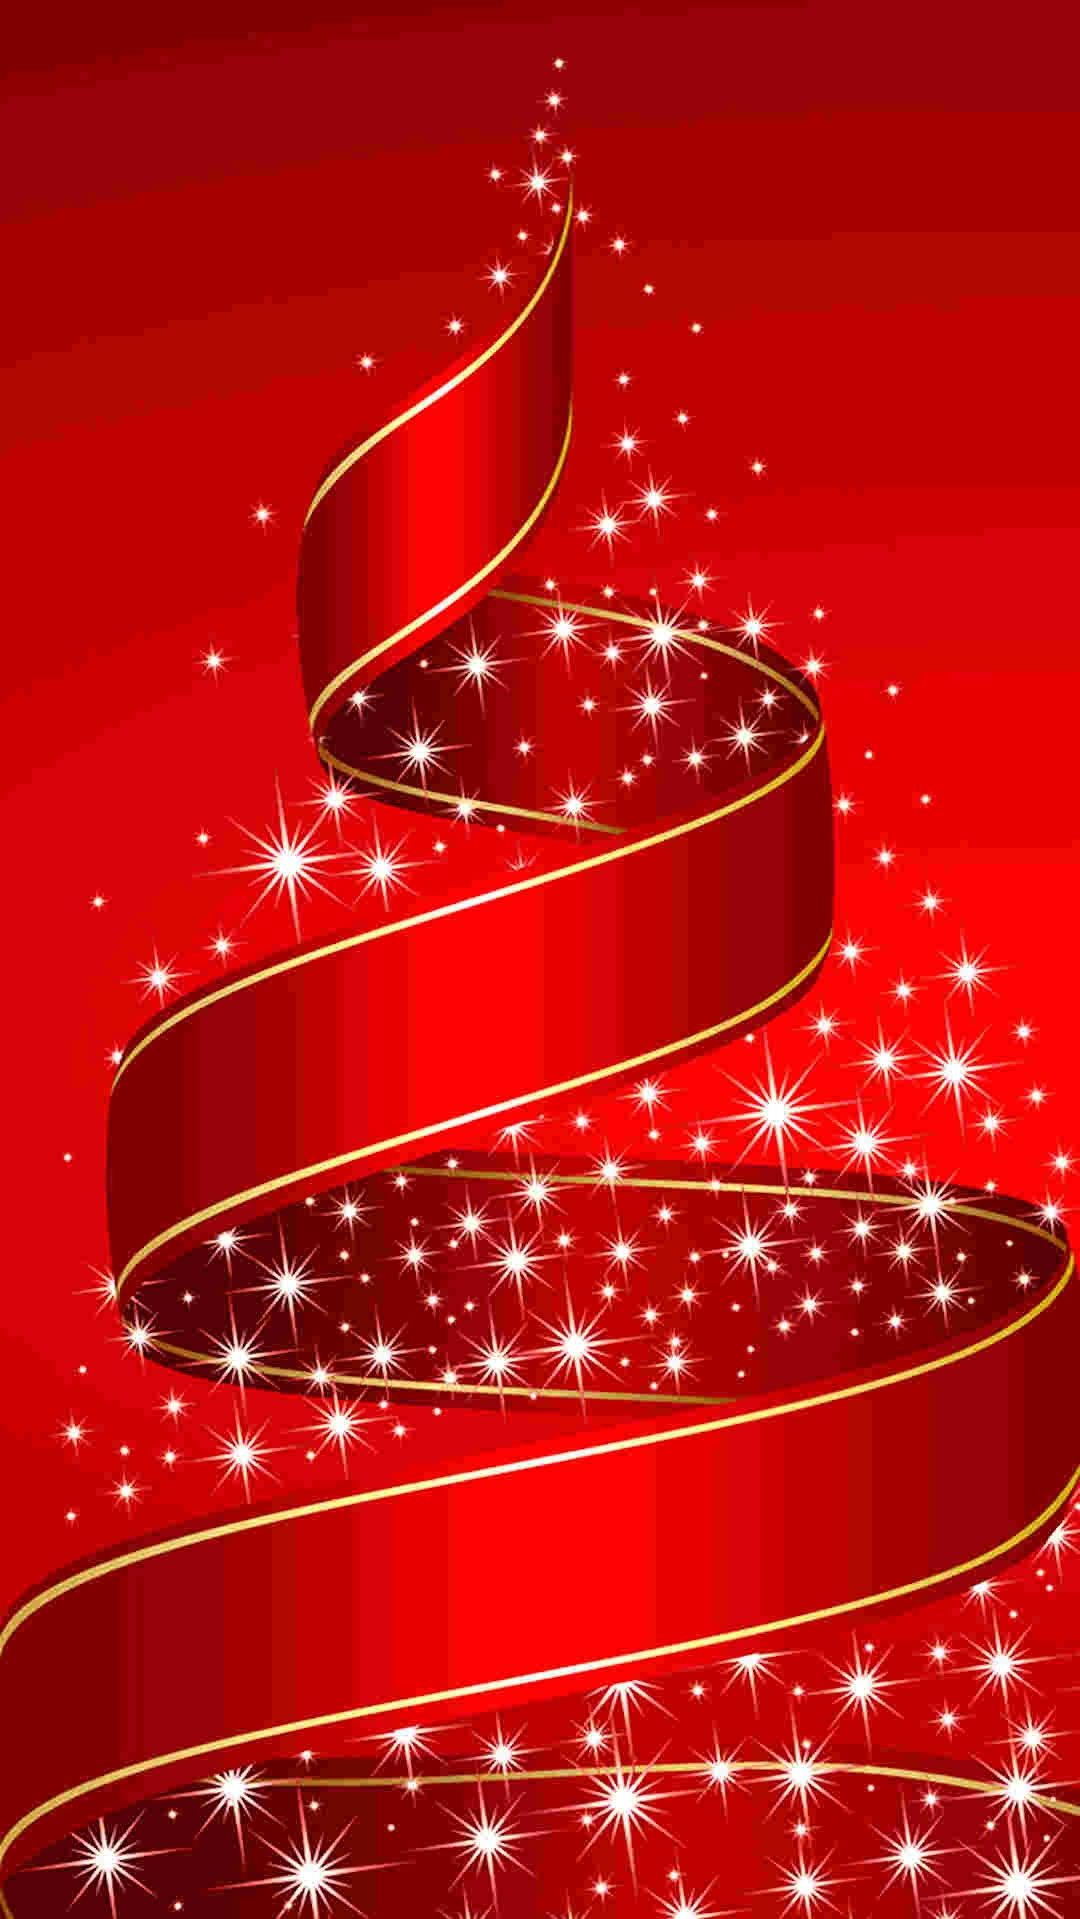 Red Ribbon Christmas Tree IPhone 6 Plus Wallpaper